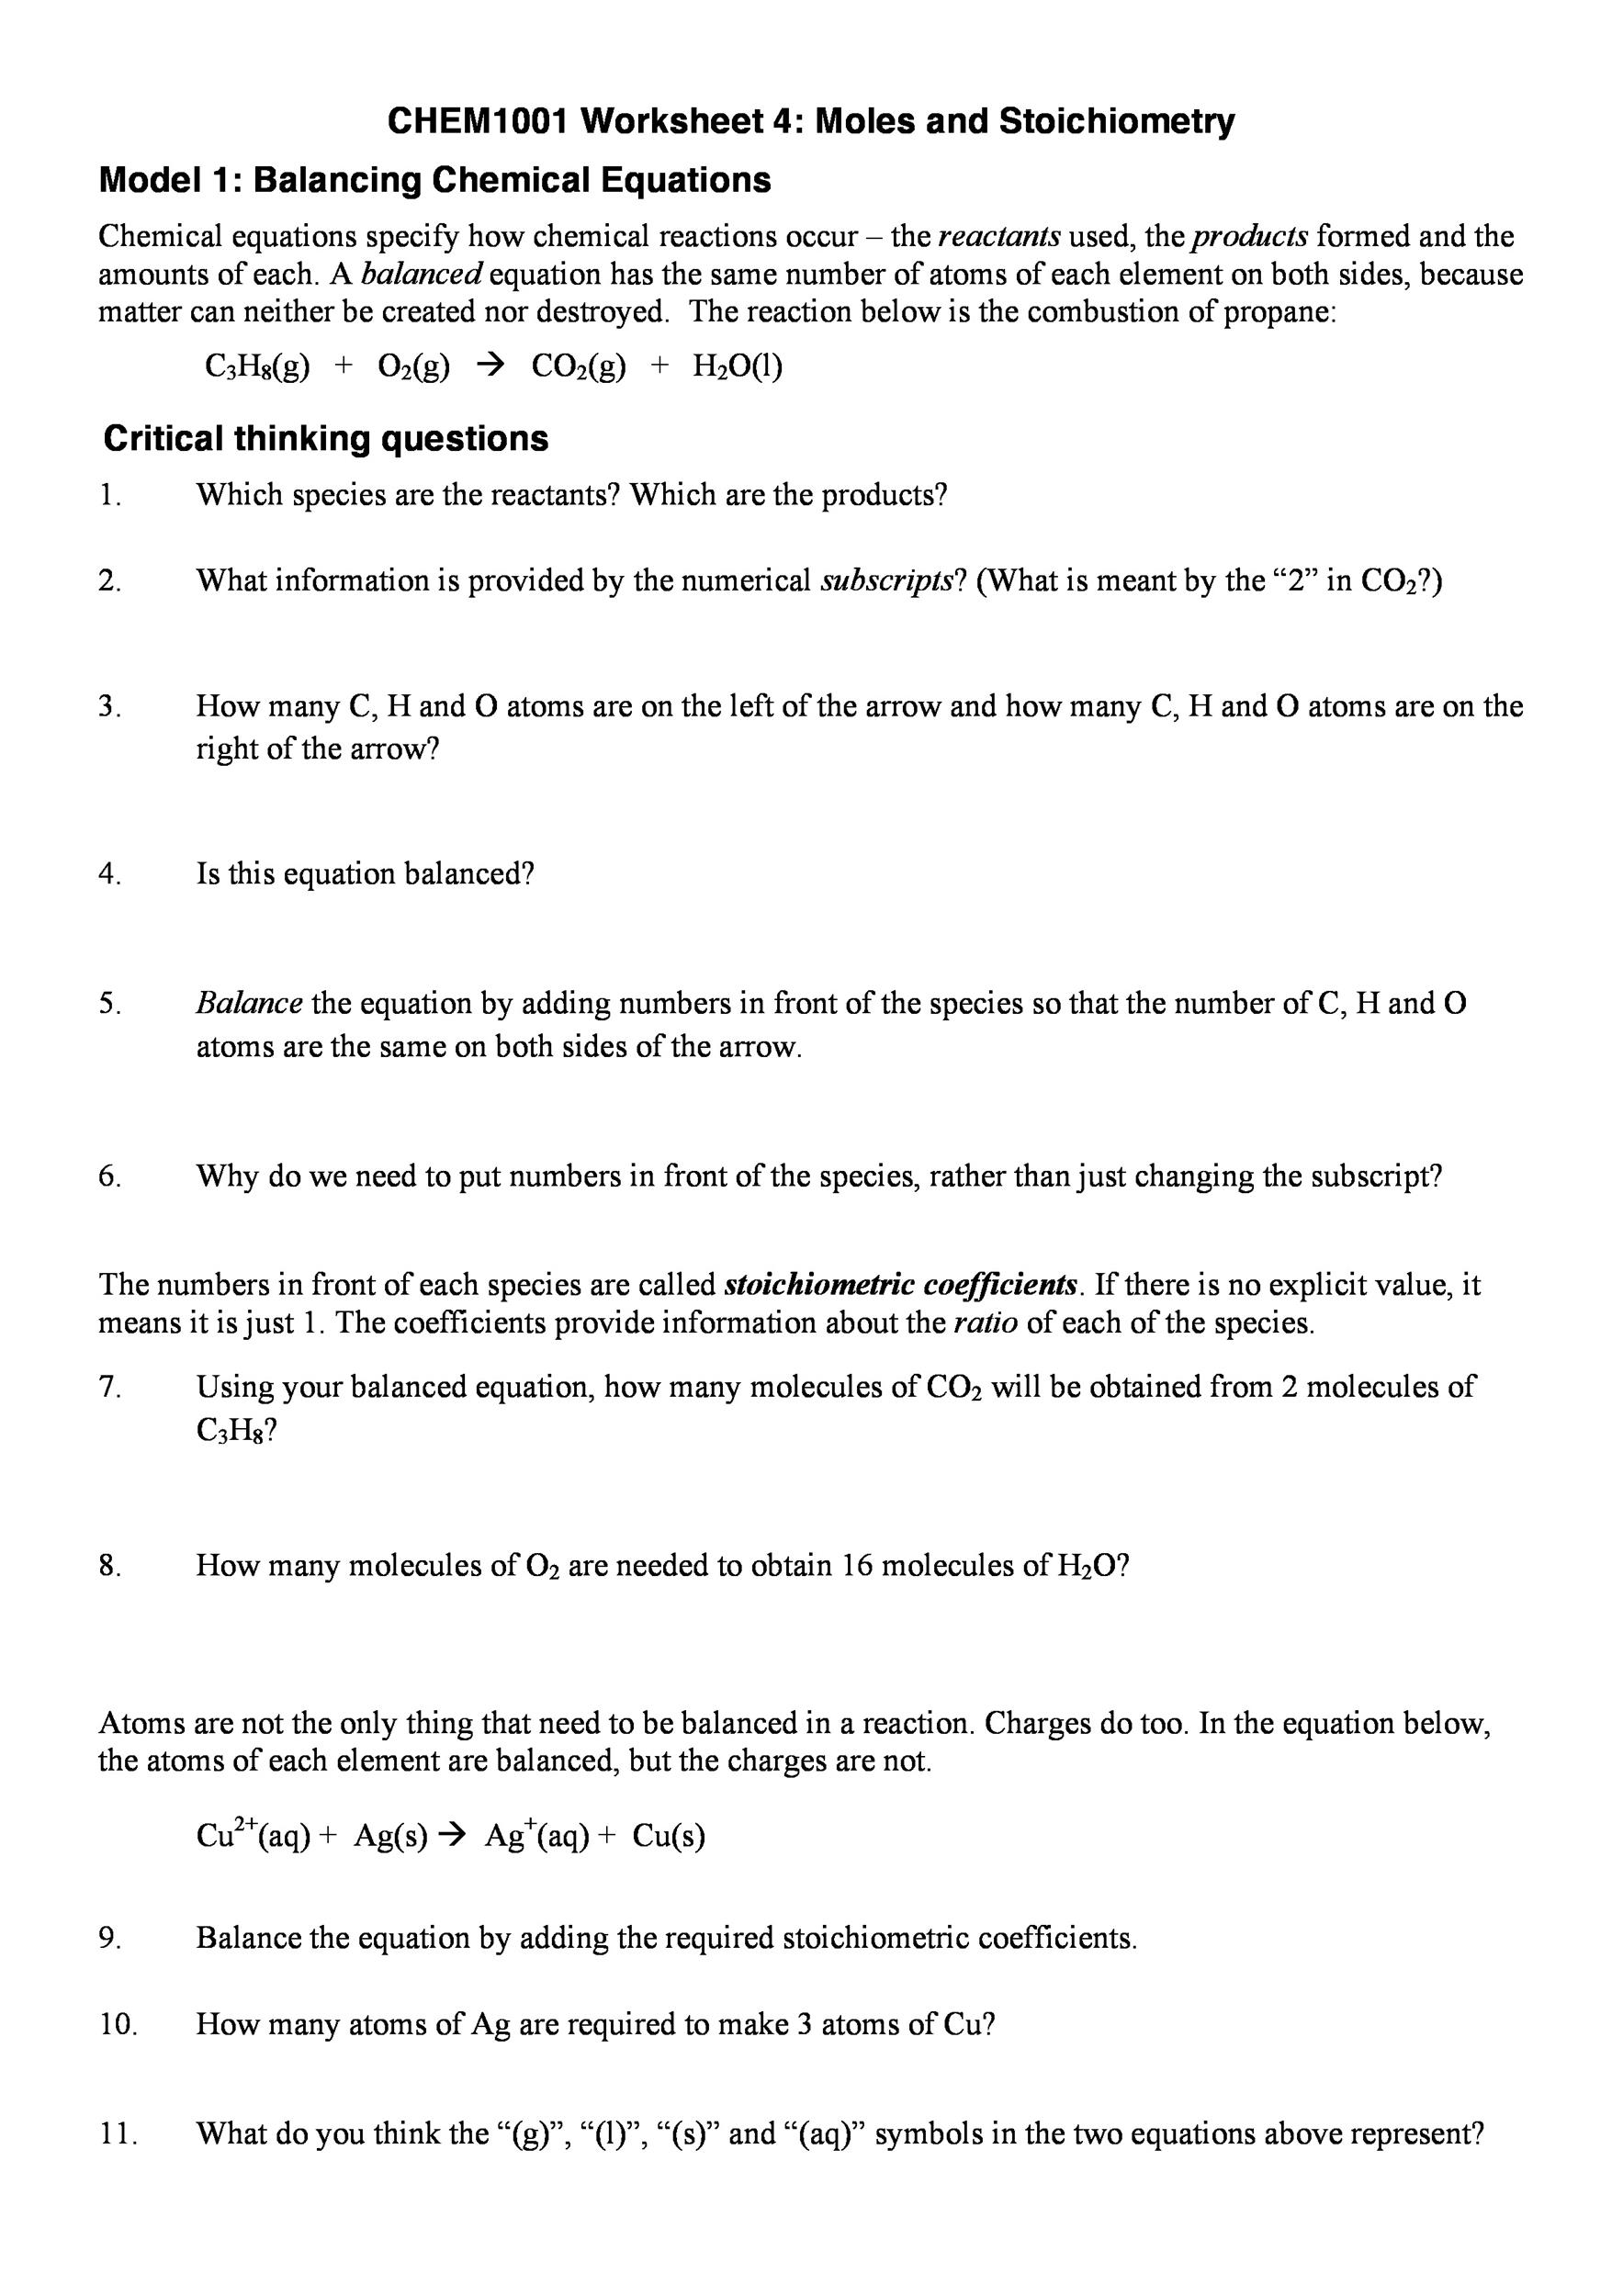 worksheet Balancing Chemical Equations Worksheet 1 Answer Key chemical equations and stoichiometry answers tessshebaylo 49 balancing worksheets with answers